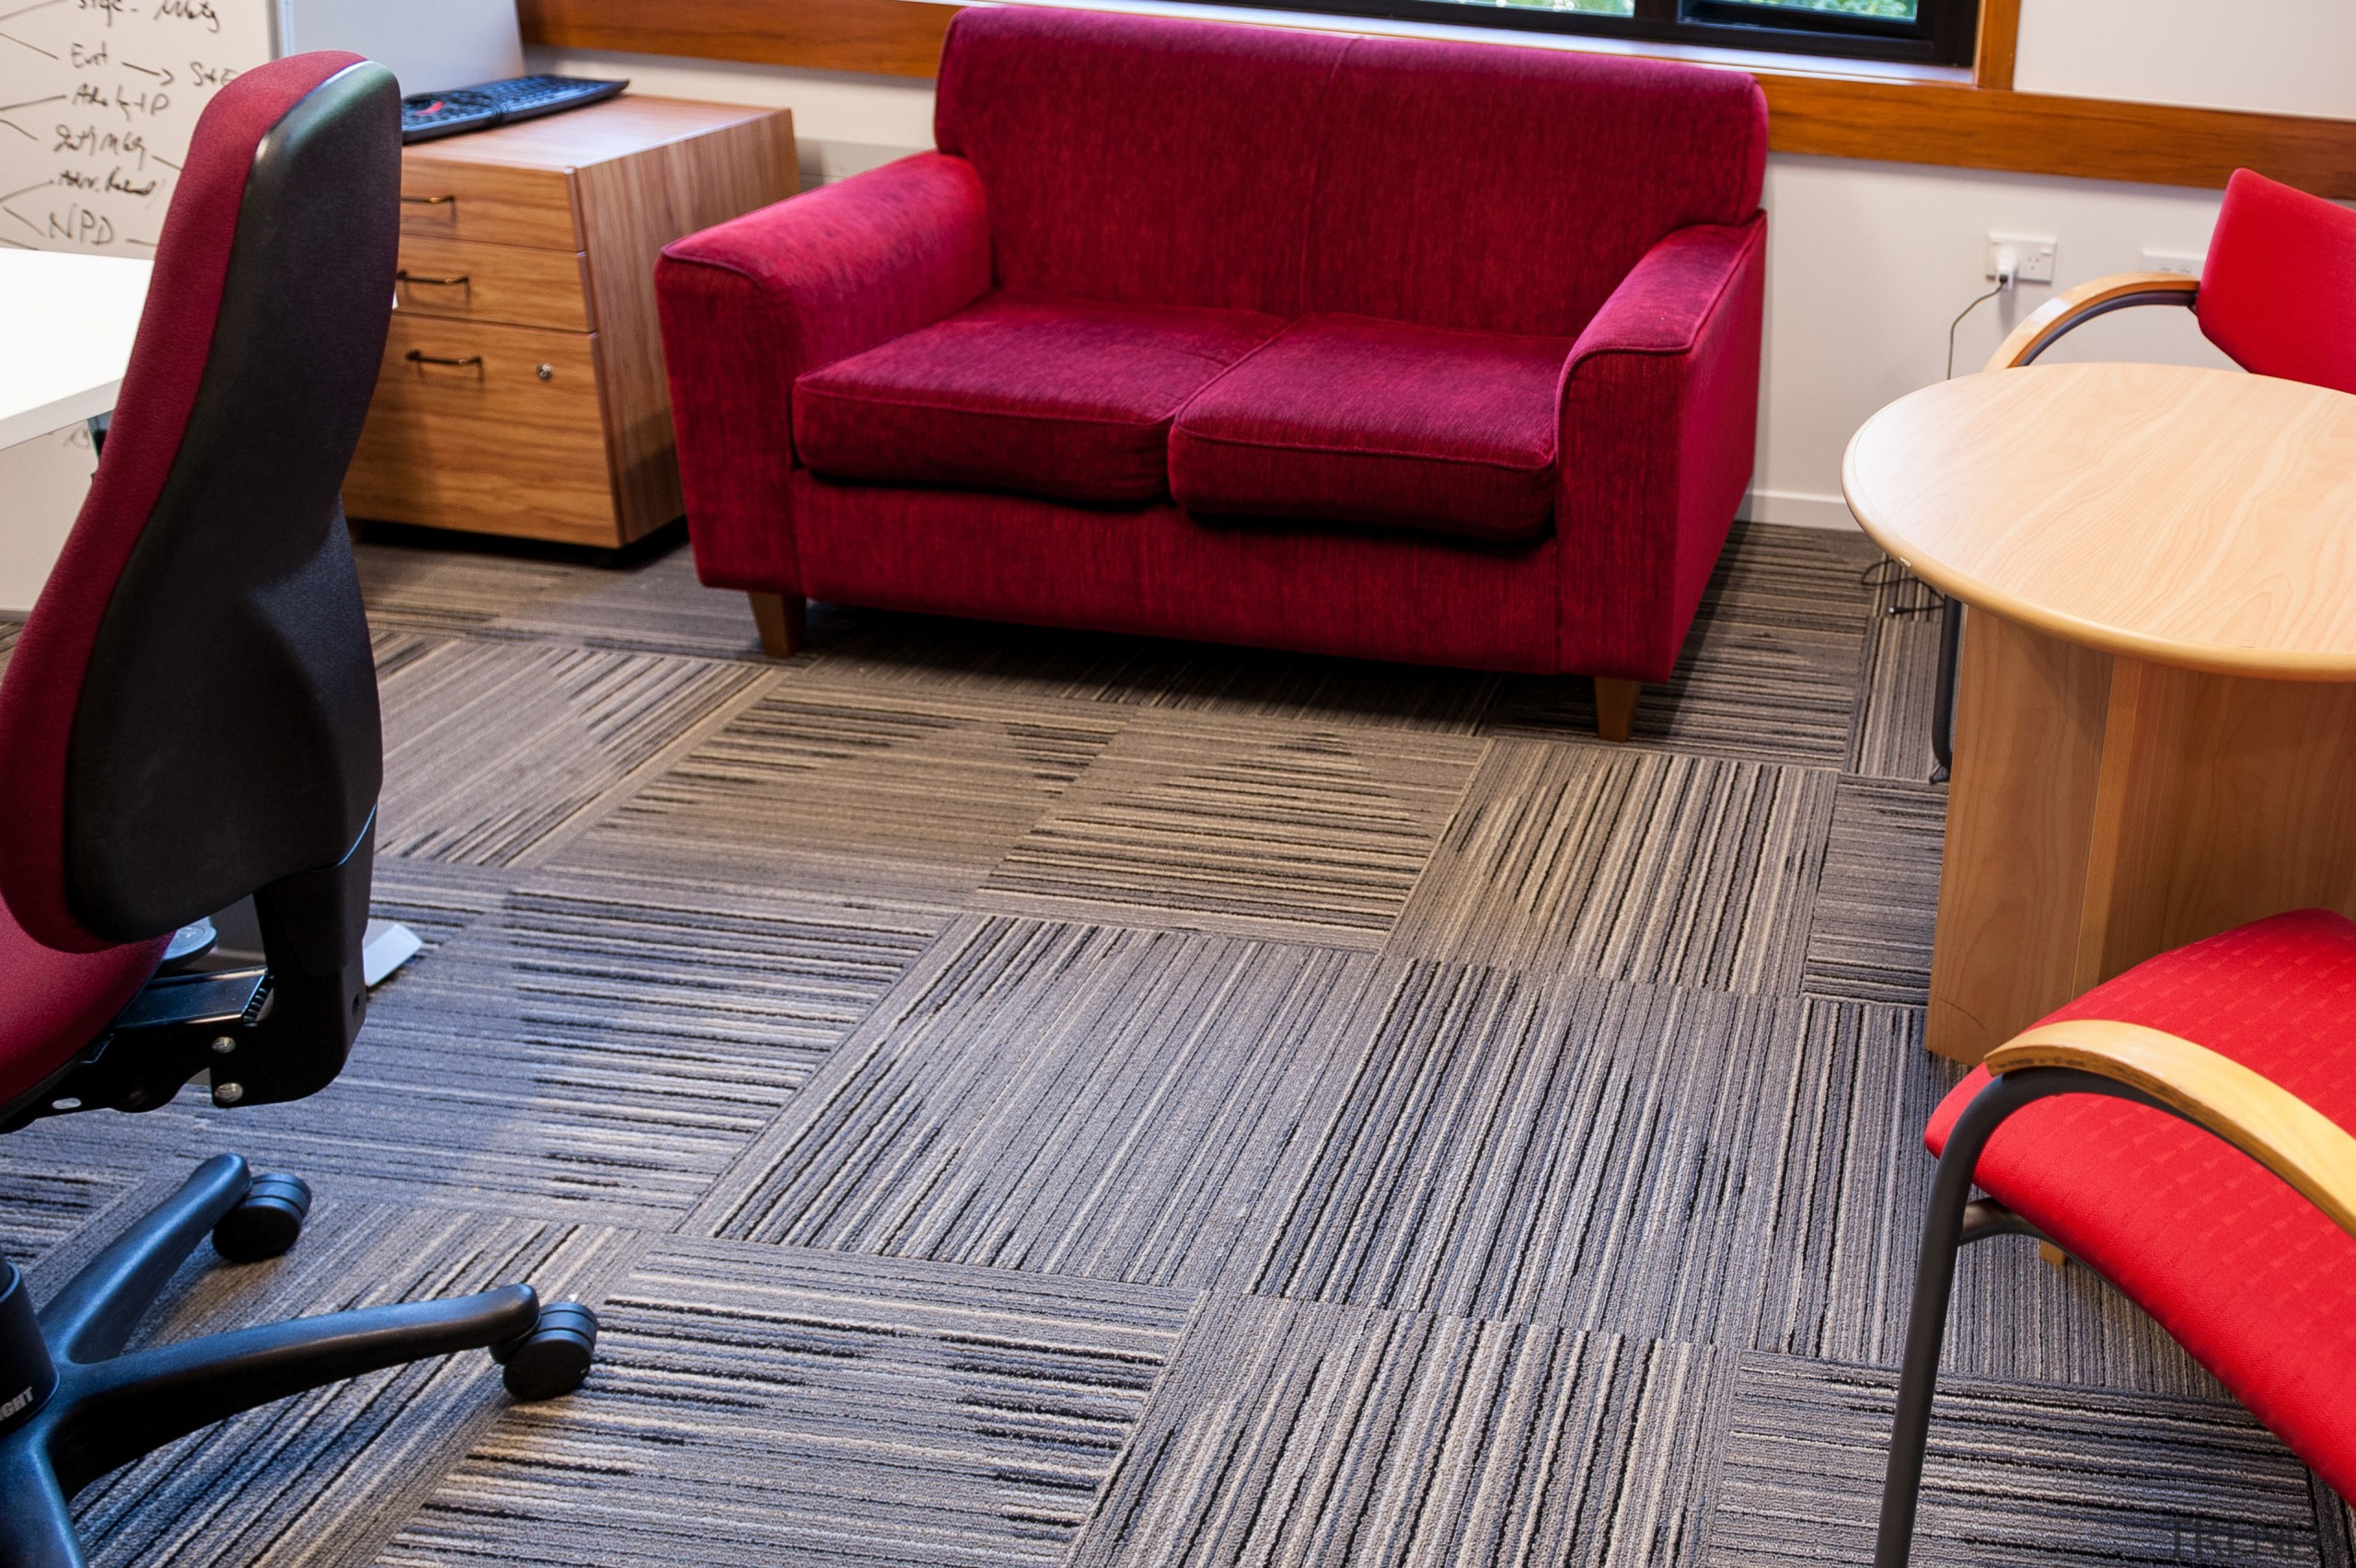 Durable, good-looking carpet tiles for commercial use angle, carpet, chair, couch, design, floor, flooring, furniture, hardwood, interior design, laminate flooring, living room, product design, room, table, wood, wood flooring, gray